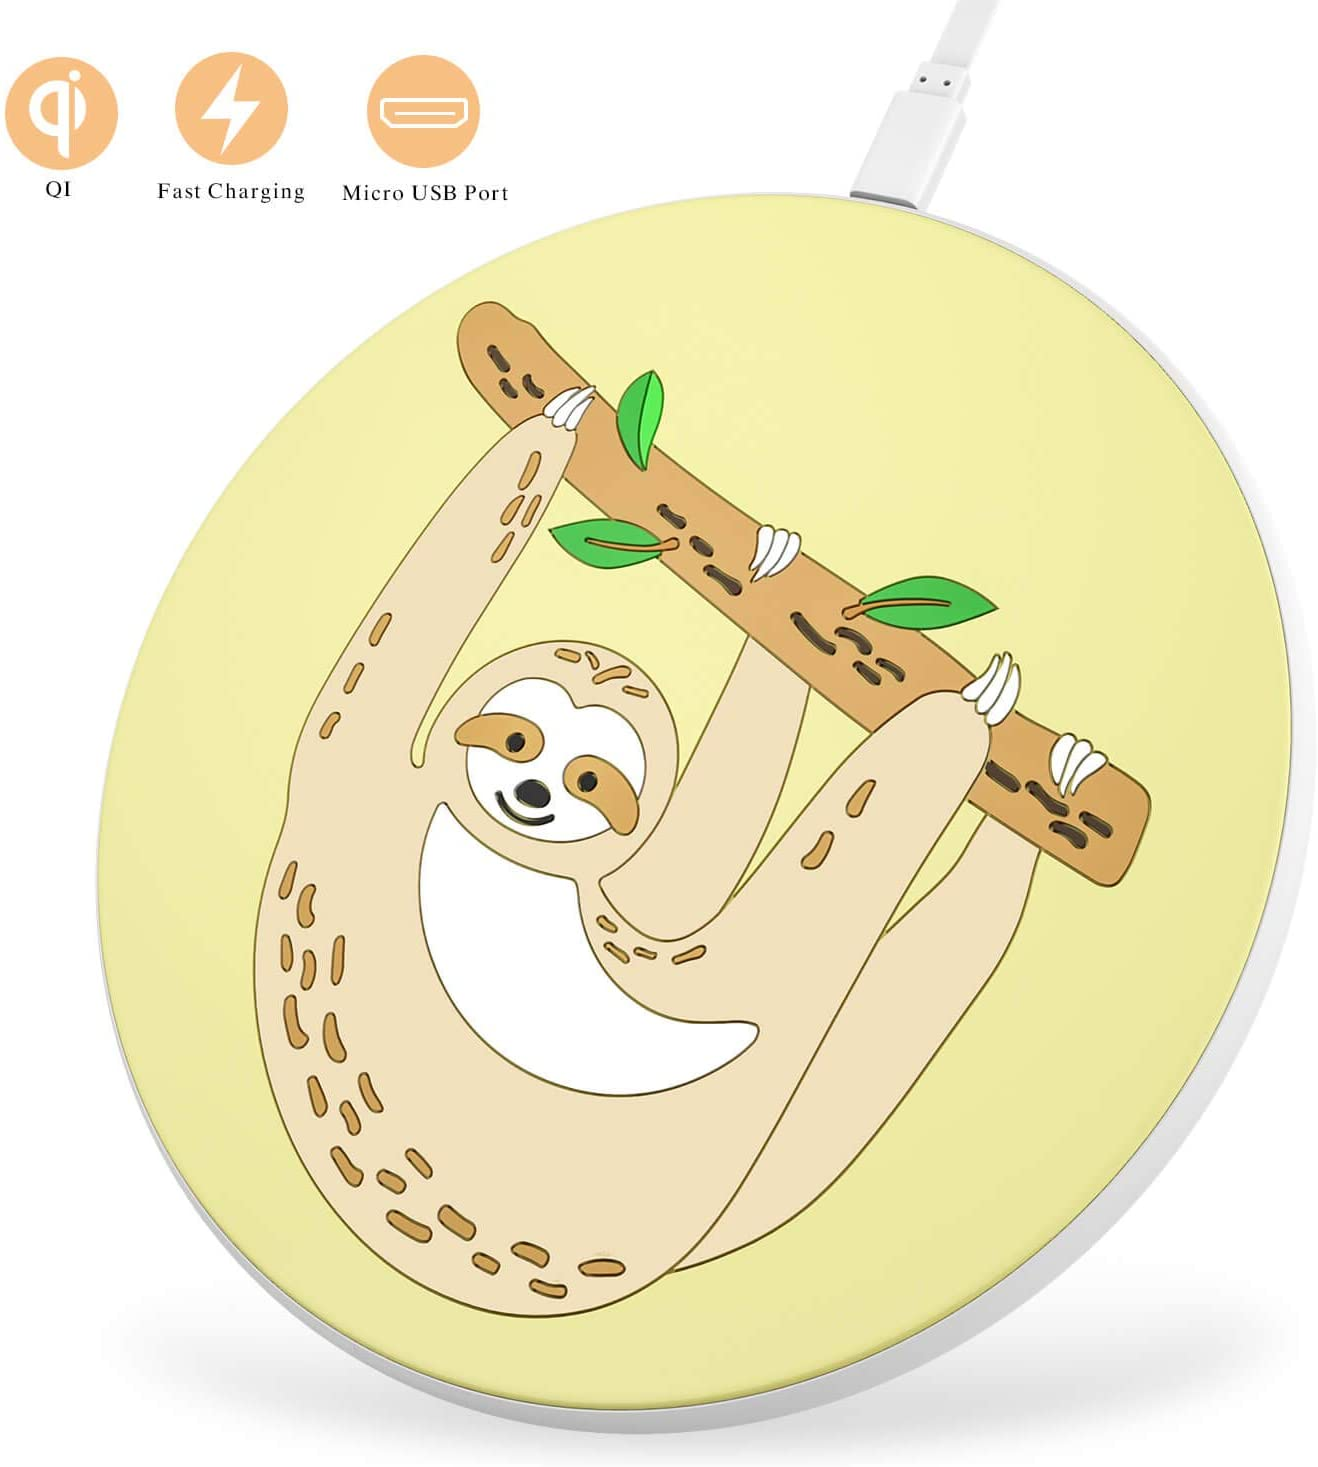 Beanlieve Sloth Wireless Charger Qi-Certified - 10W Wireless Charger for Samsung Galaxy S10/S10 Plus/S9/S9 Plus,7.5W Wireless Charging pad for iPhone 11/11 Pro/11 Pro Max/XS MAX/XR/XS.(No AC Adapter)